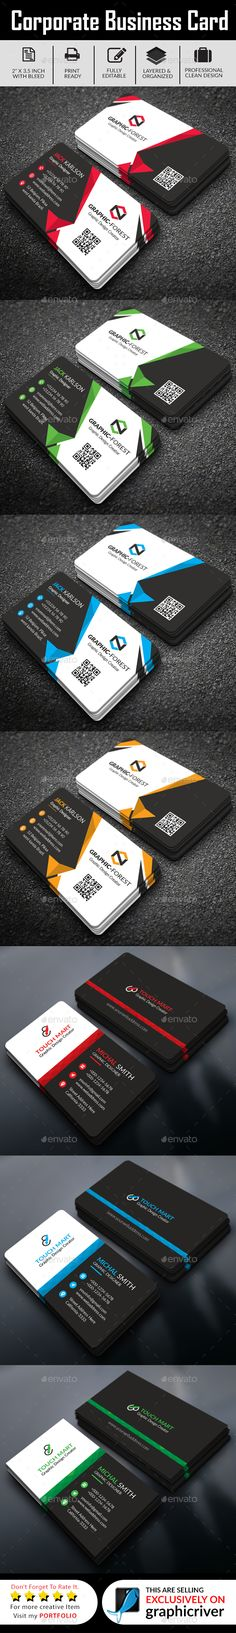 #Corporate Business Card 2 in 1 - #Business #Cards Print Templates